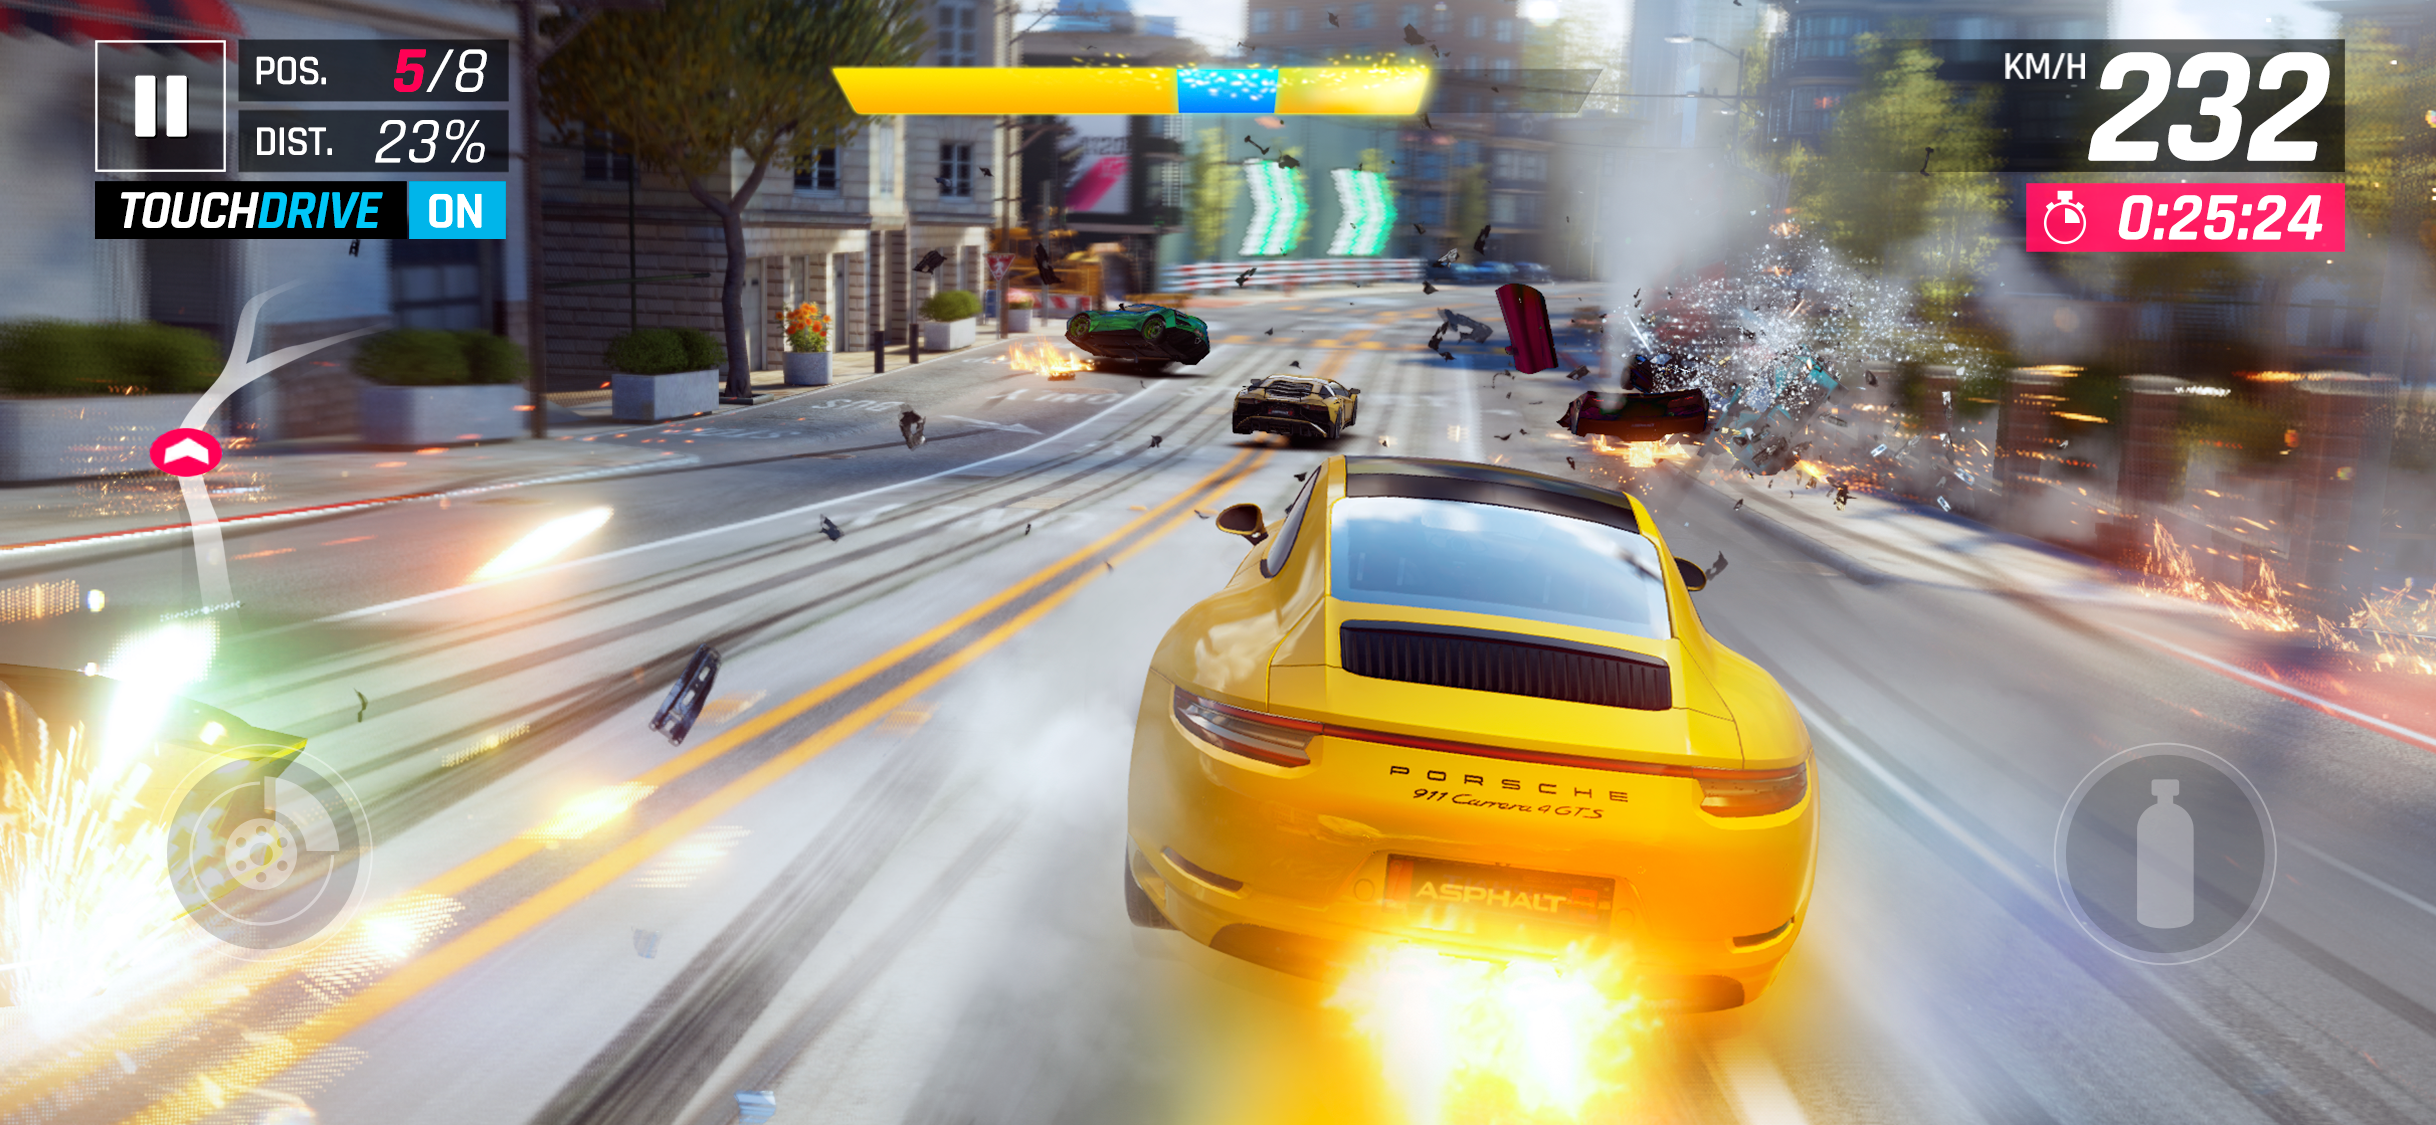 Gameloft's Asphalt 9: Legends will launch soon on Android